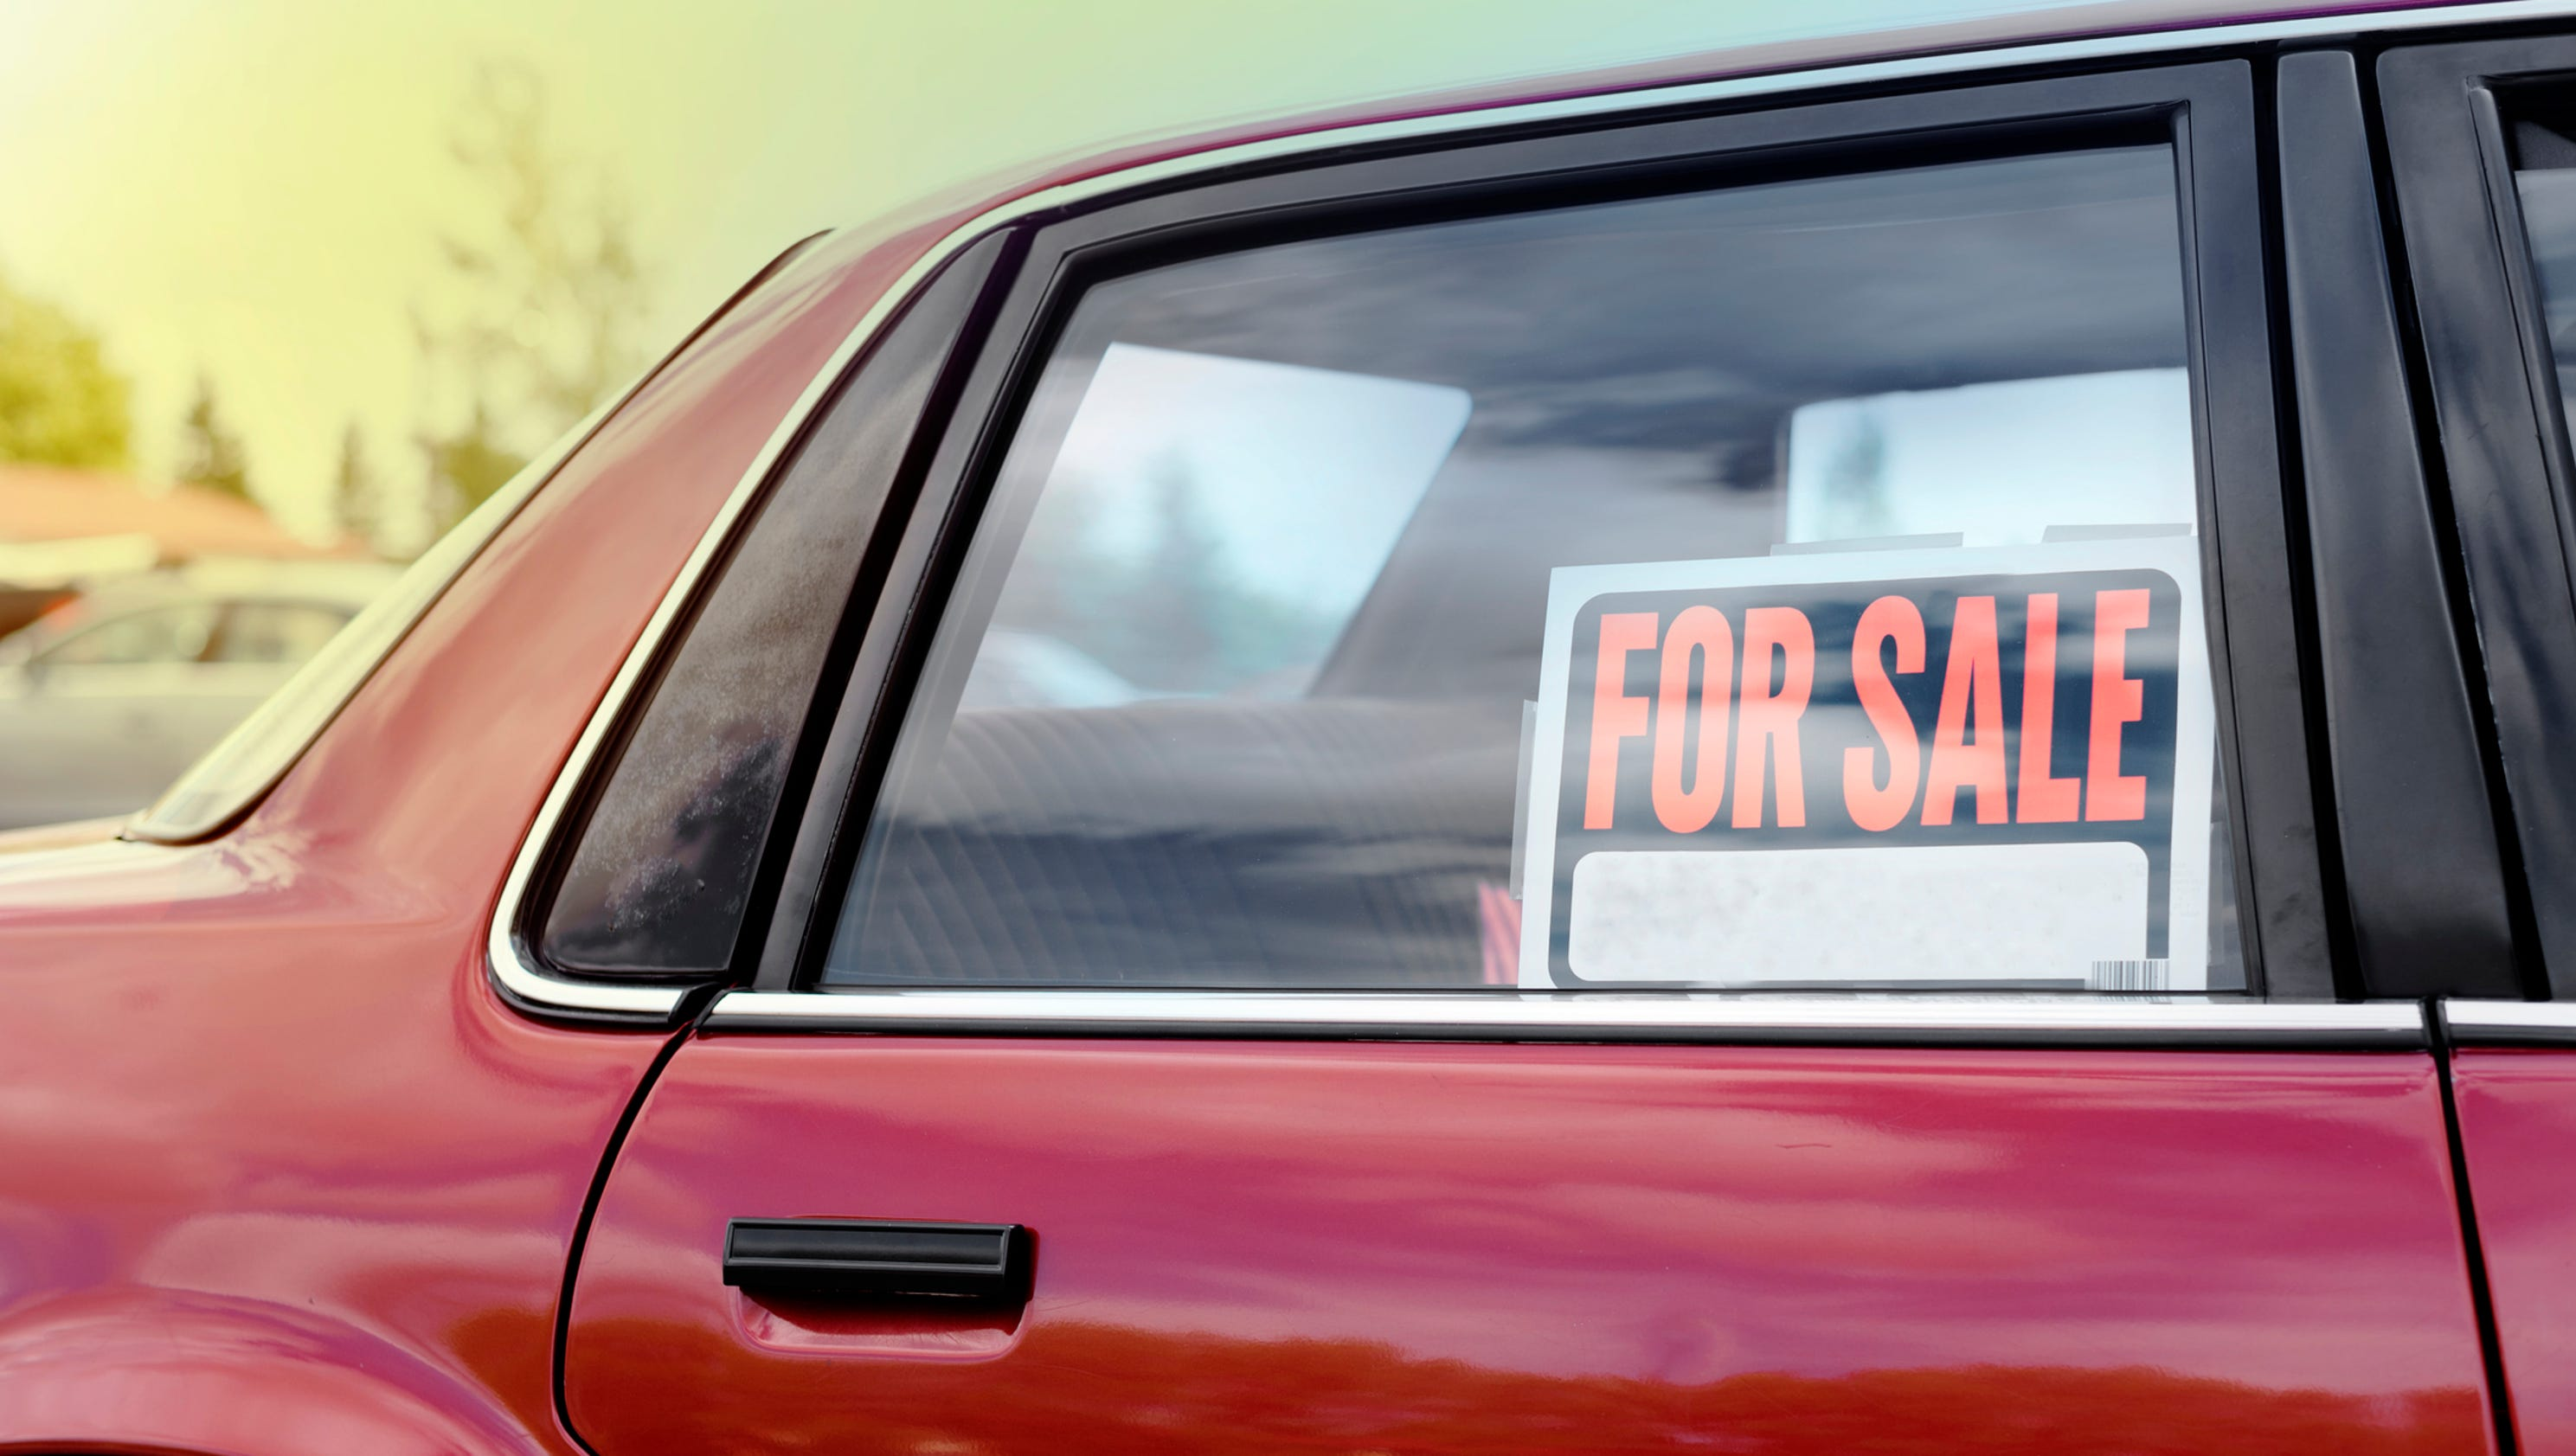 Tips on how to find a cheap, reliable used car to buy